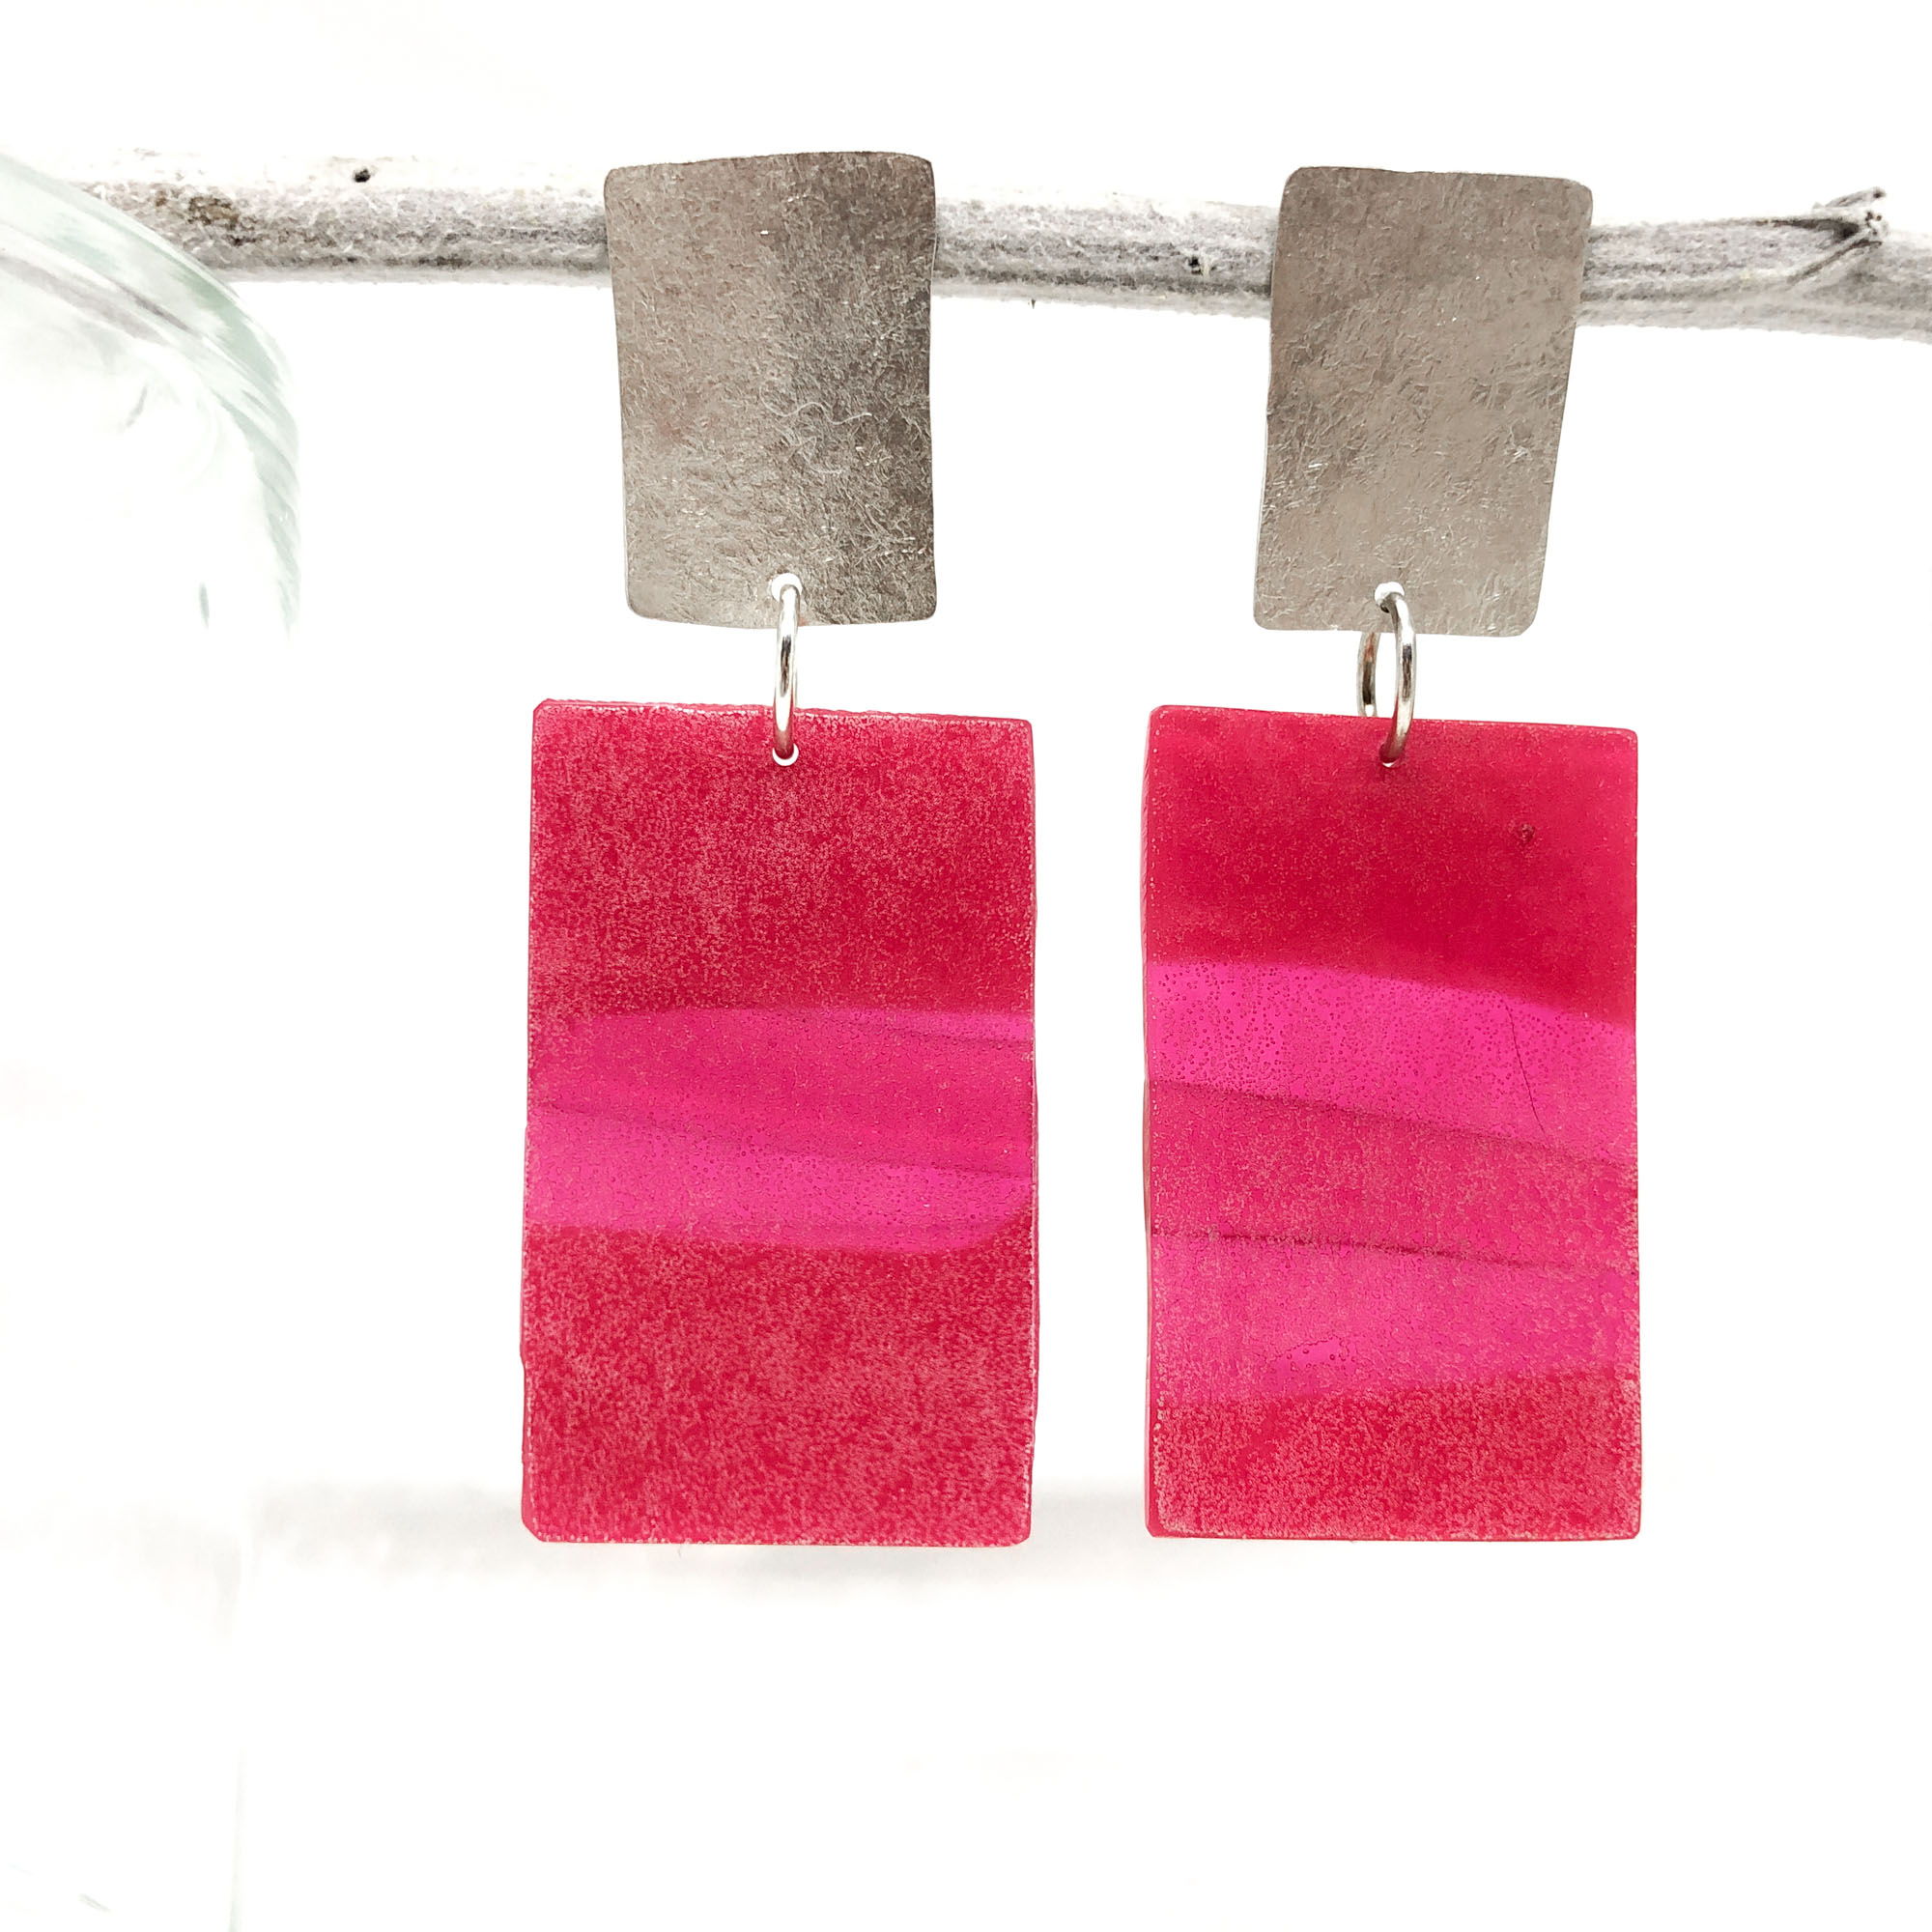 Light and pink     resin earrings - • matt pink colour • partly shine through• drop length approx. 7.3 cm• resin • hammered sterling silver• red4• 70 euro